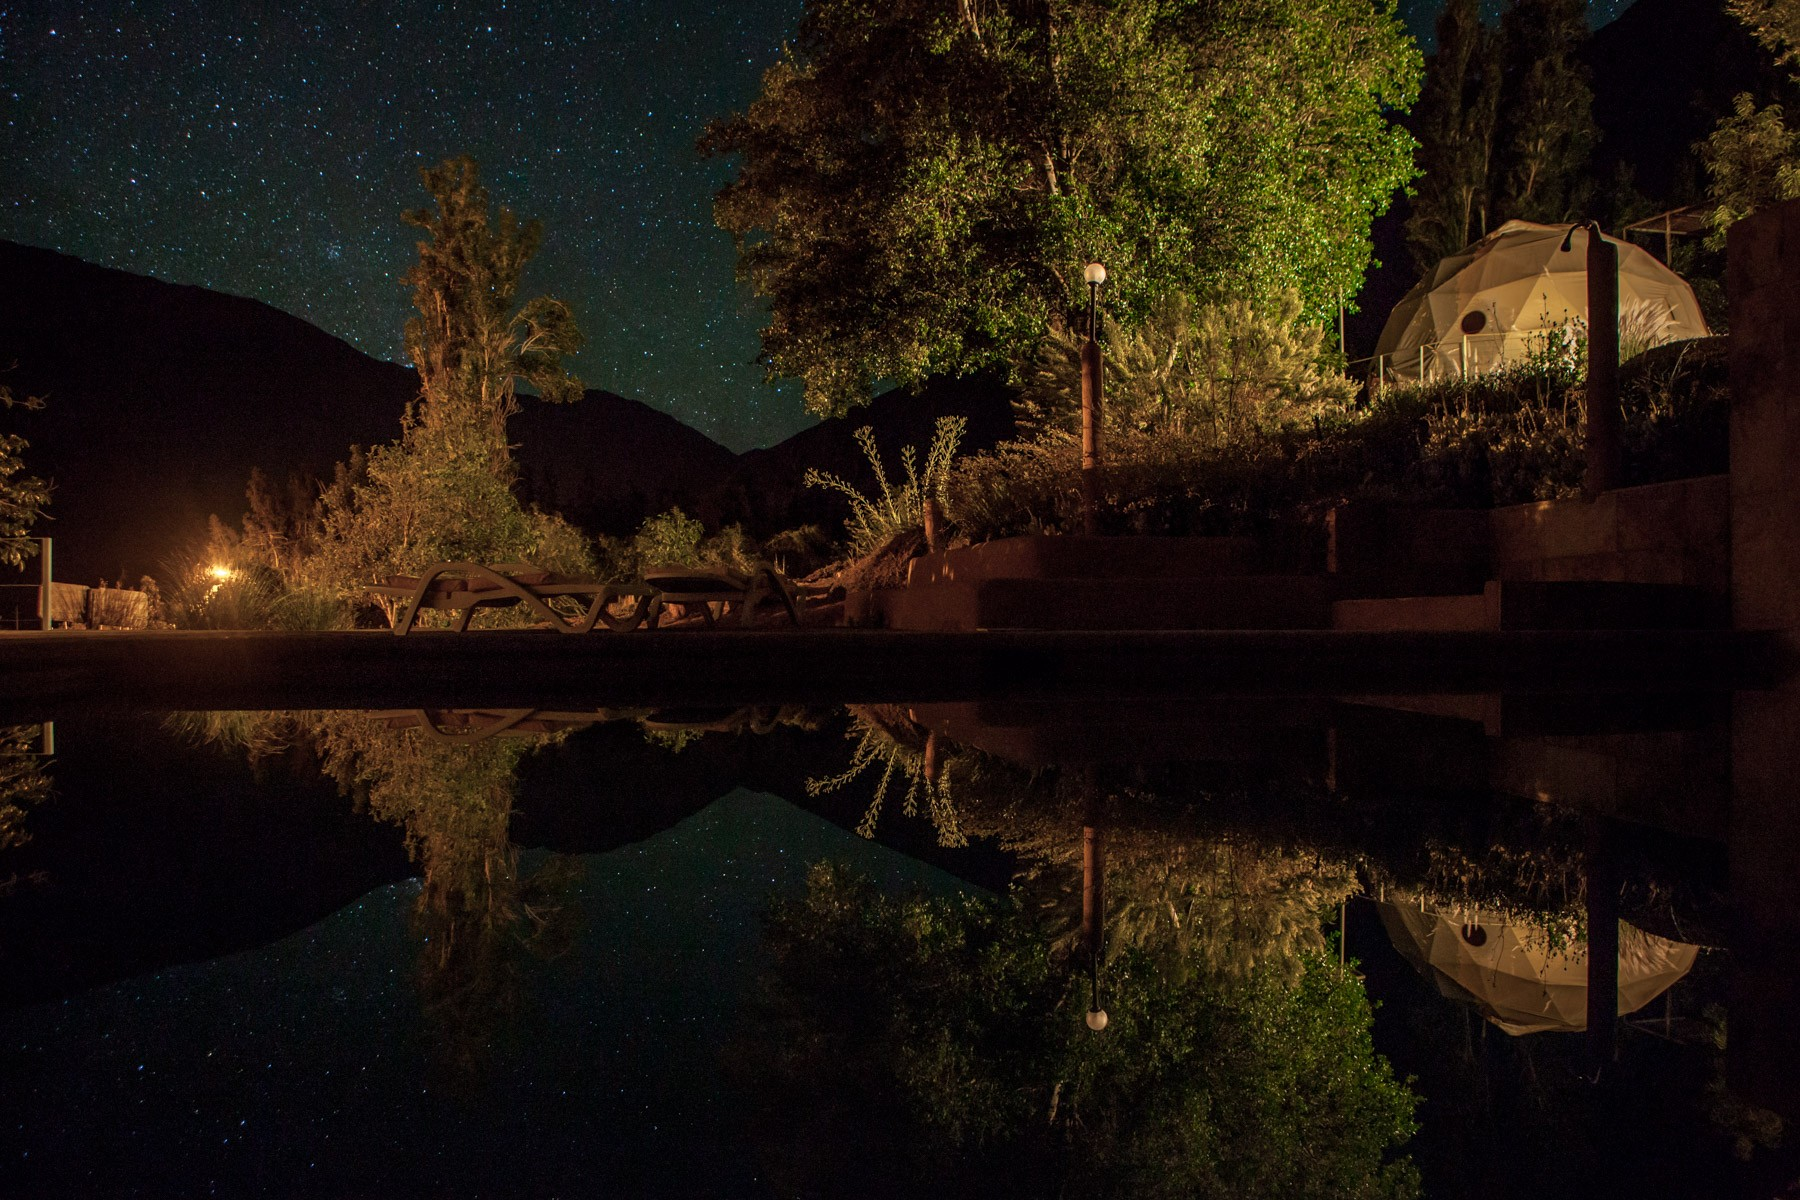 Elqui Domos Hotel Stars reflecting in pool